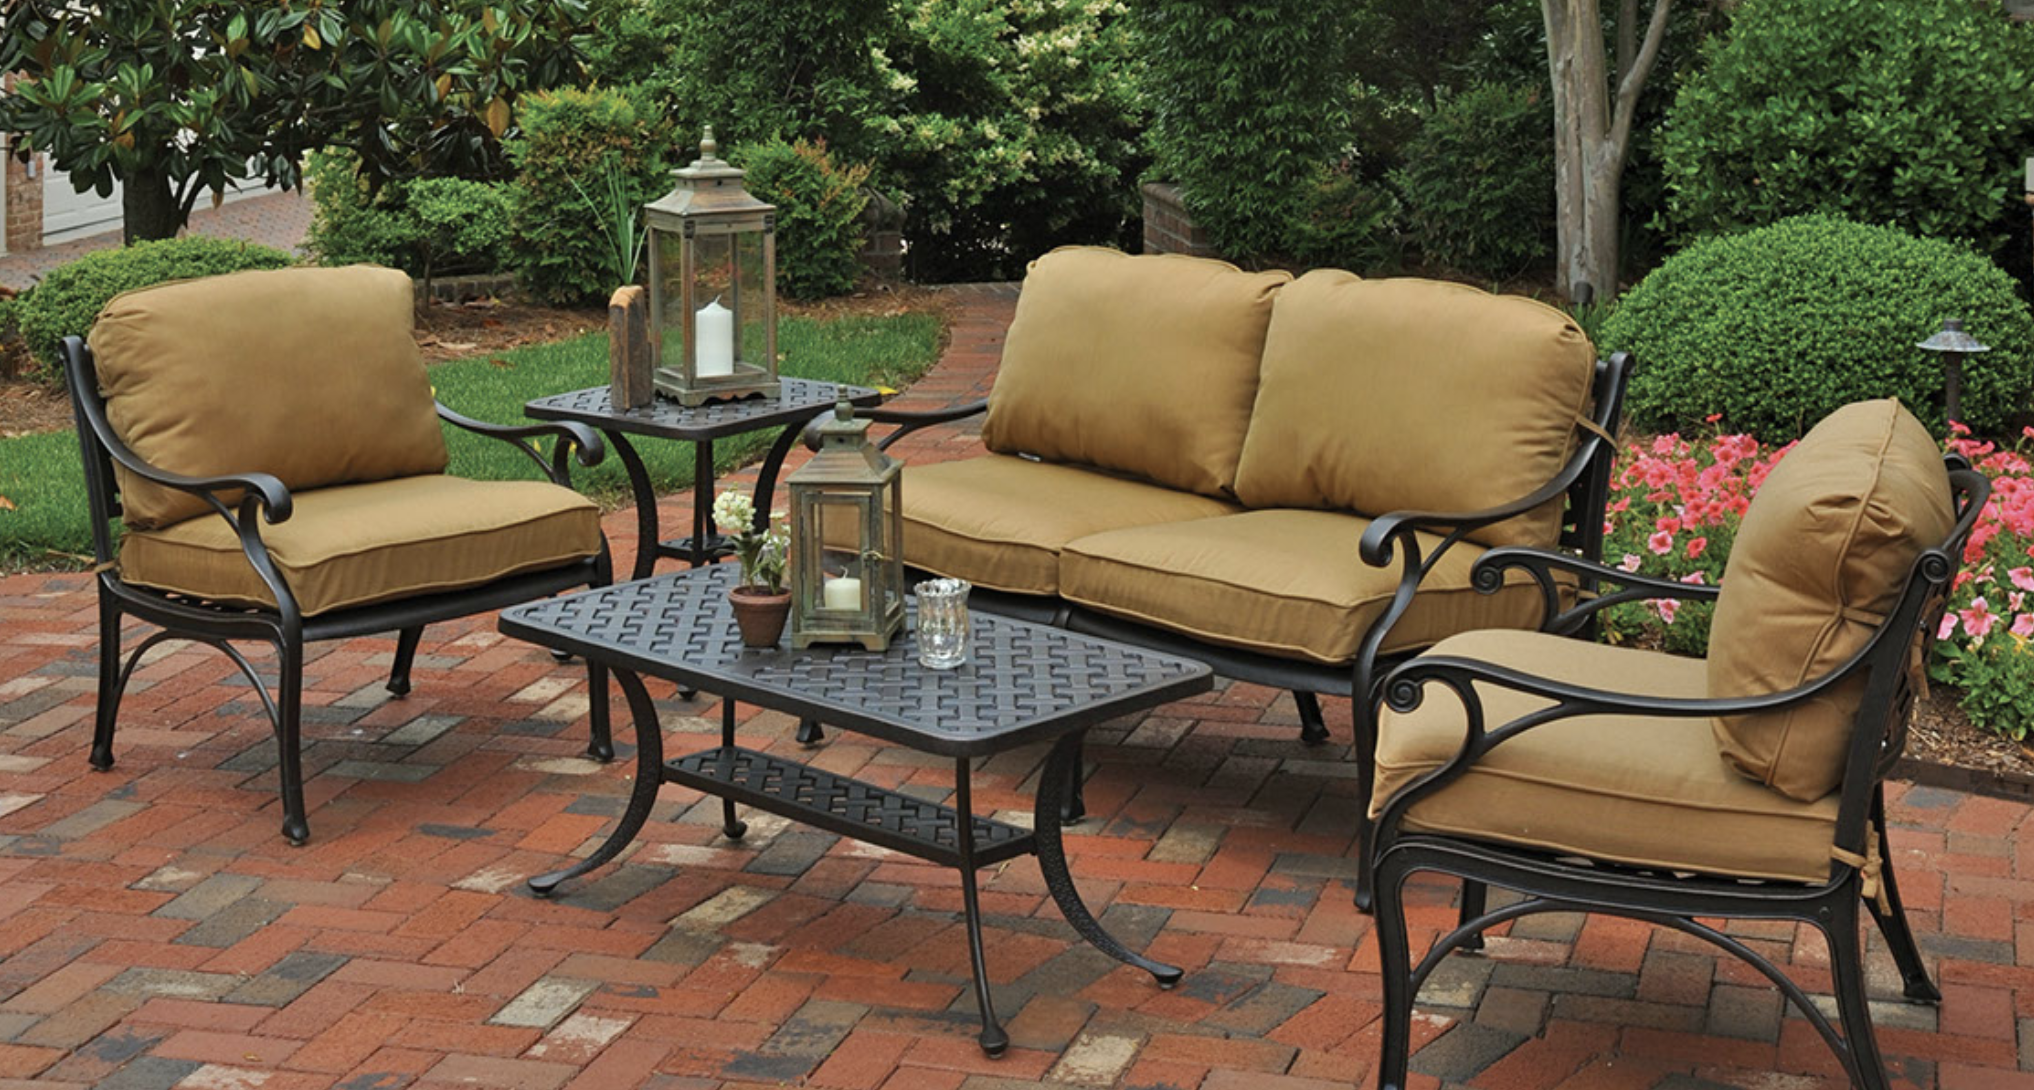 Showcase The Hanamint Brand Sunniland Patio Patio Furniture In Boca Raton